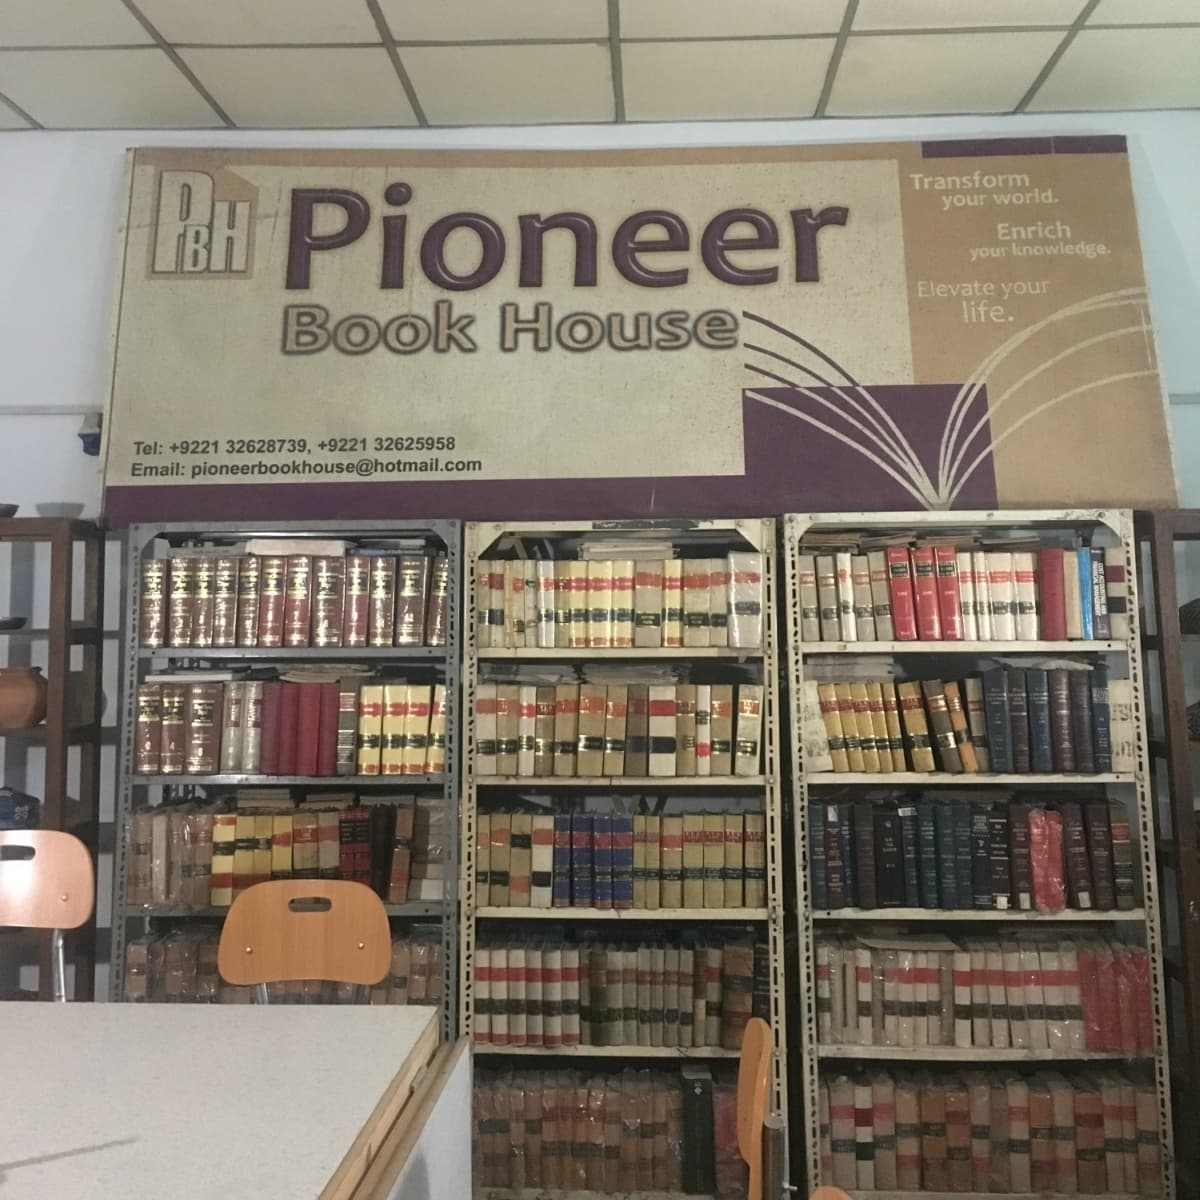 The first floor of Pioneer Book House is a gallery space and meeting room now